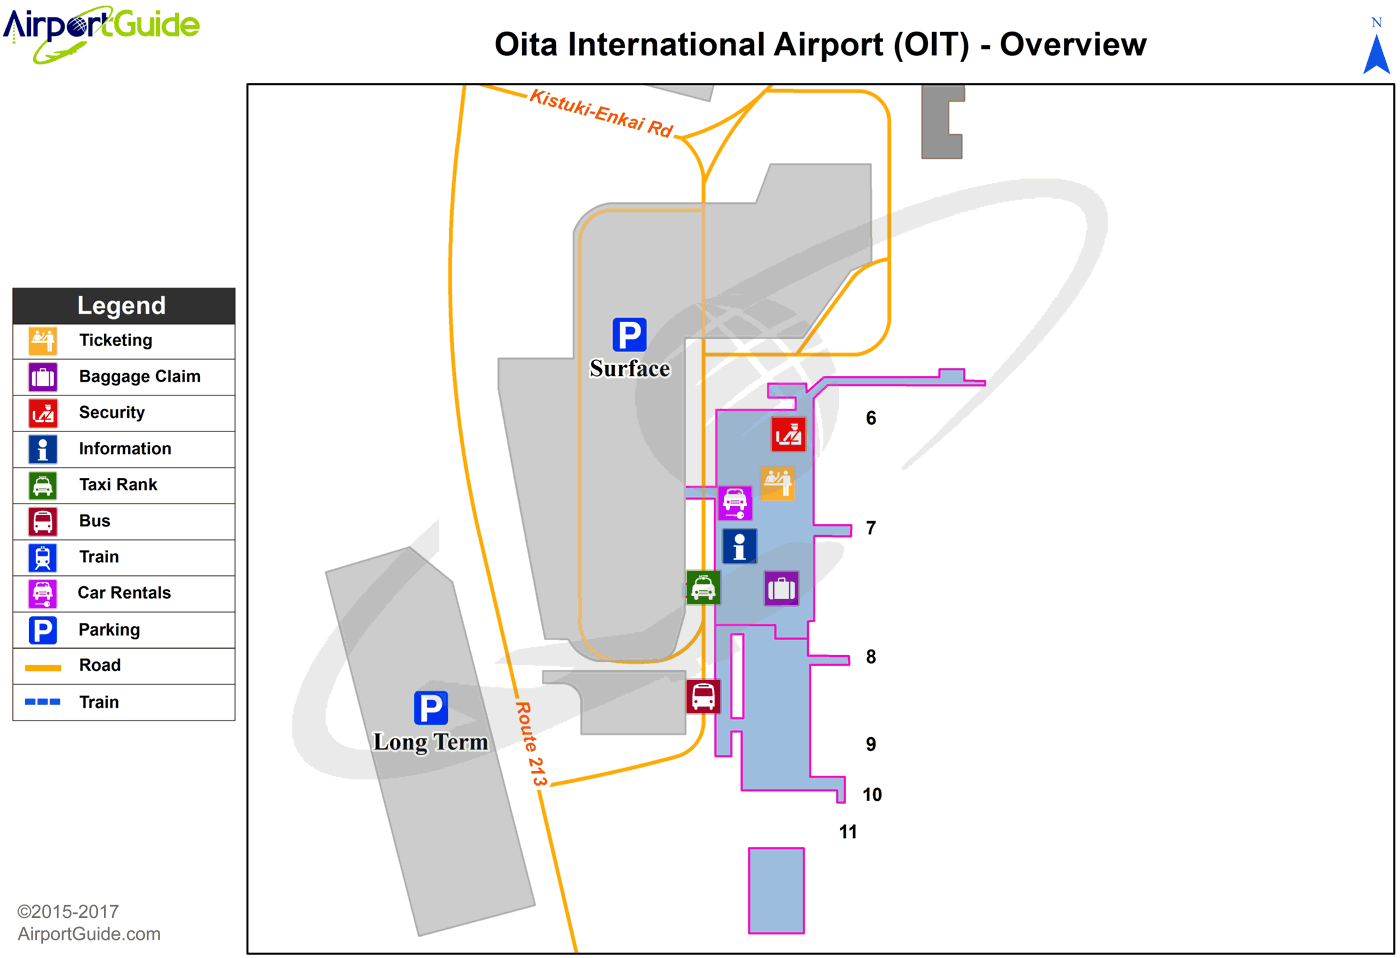 Oita - Oita (OIT) Airport Terminal Map - Overview